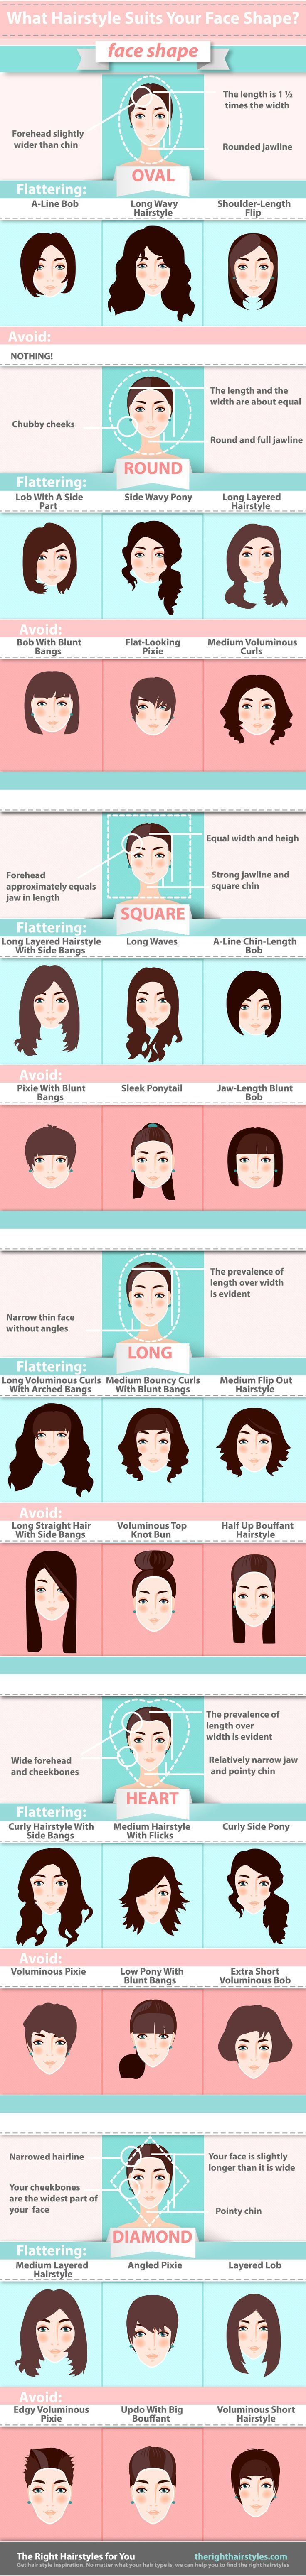 What Hairstyle Suits Your Face Shape #hair |